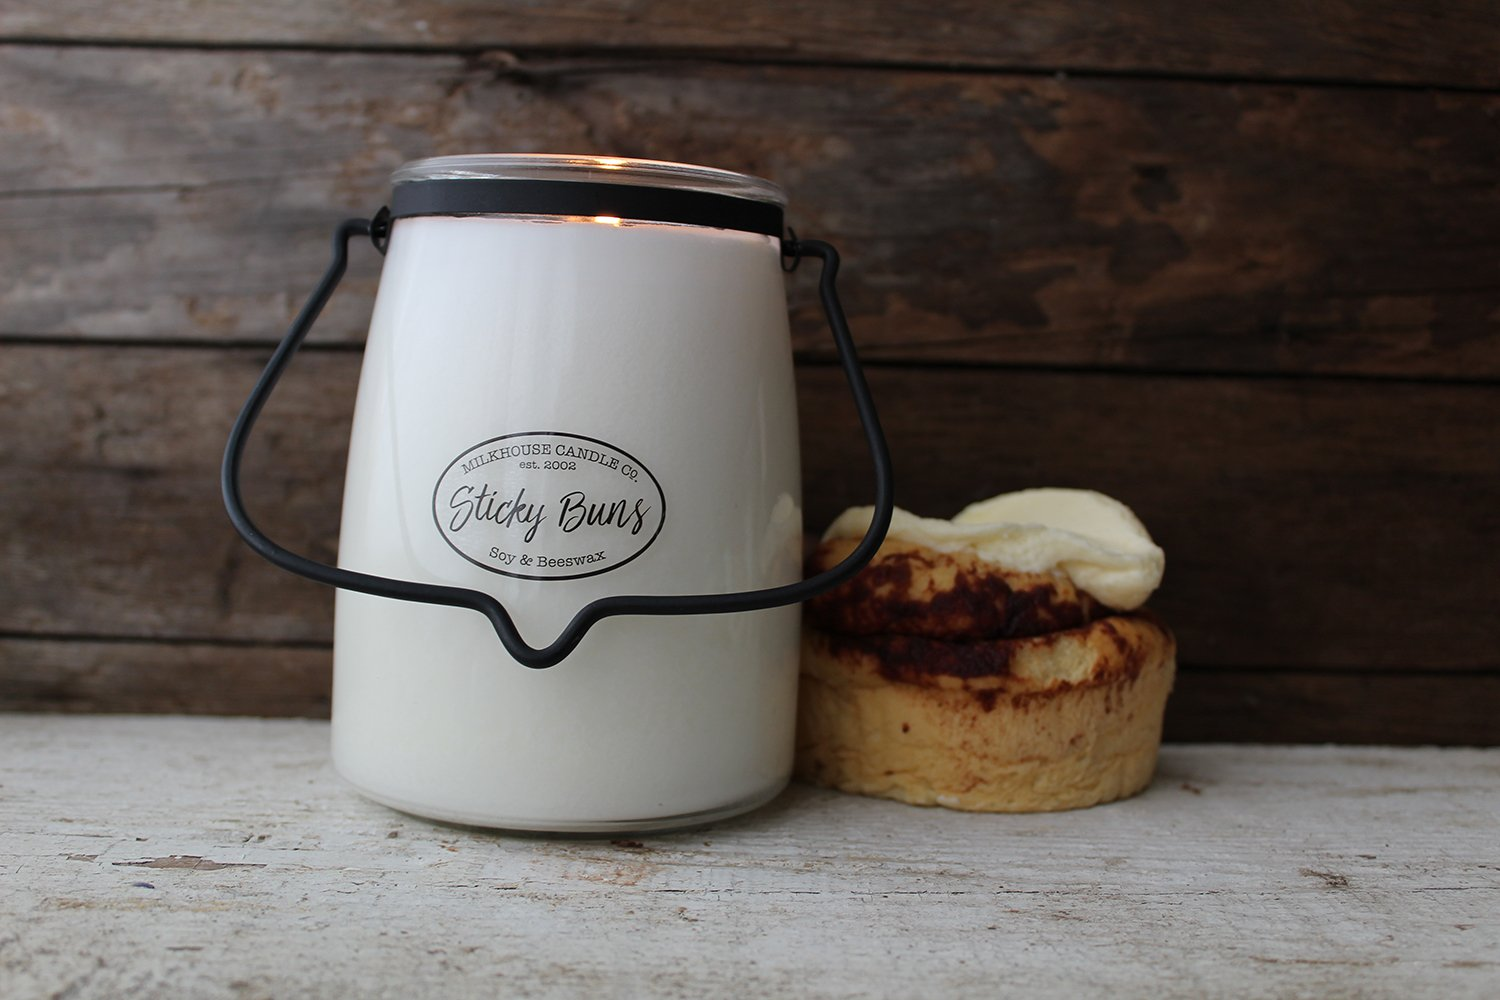 22oz Butter Jar Candle - Sticky Buns